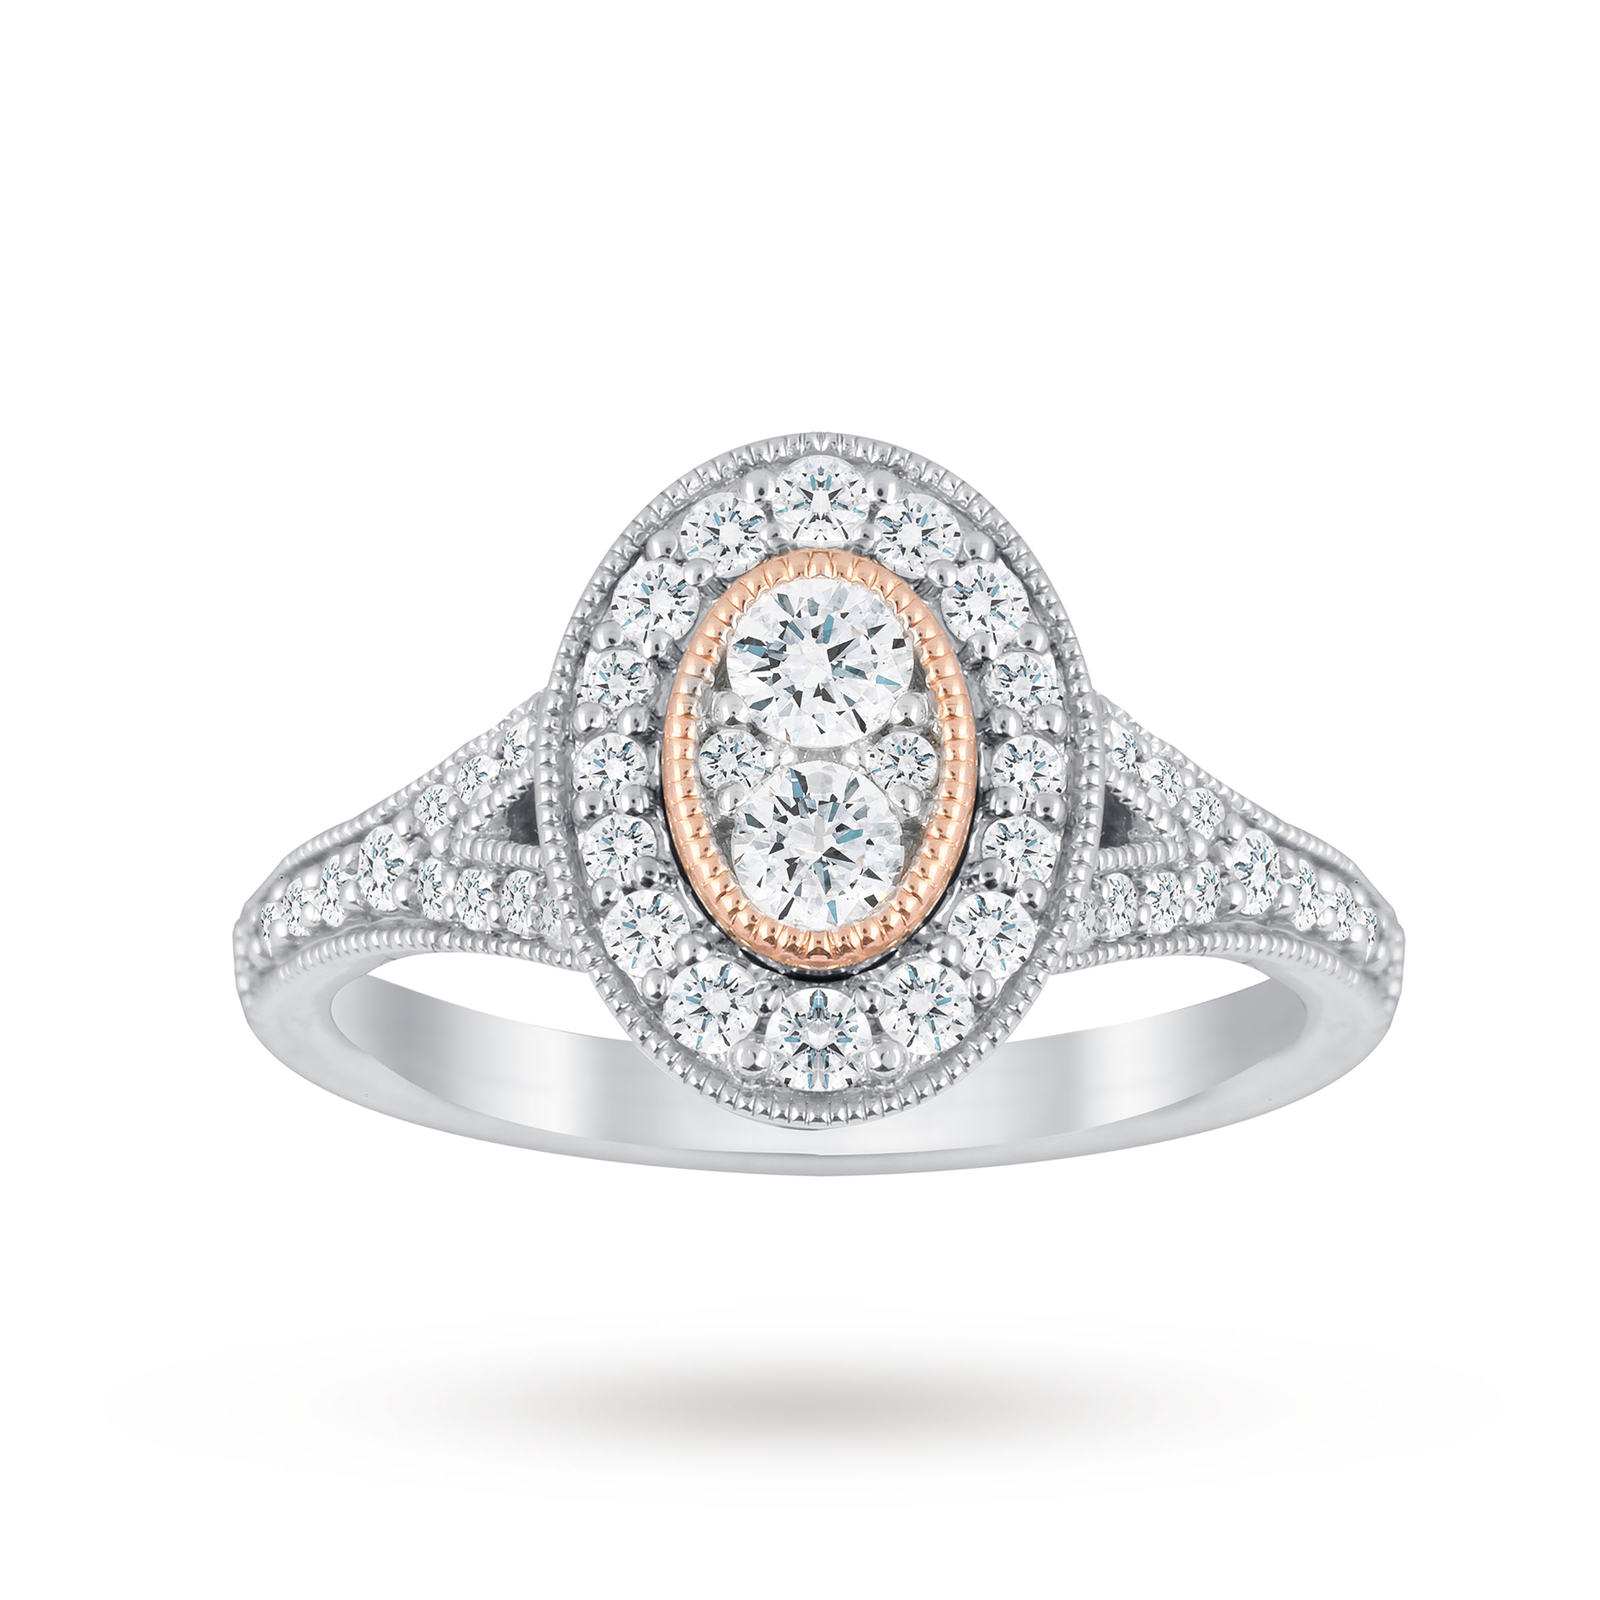 oval rings wedding pinterest ideas best ring diamond on engagement